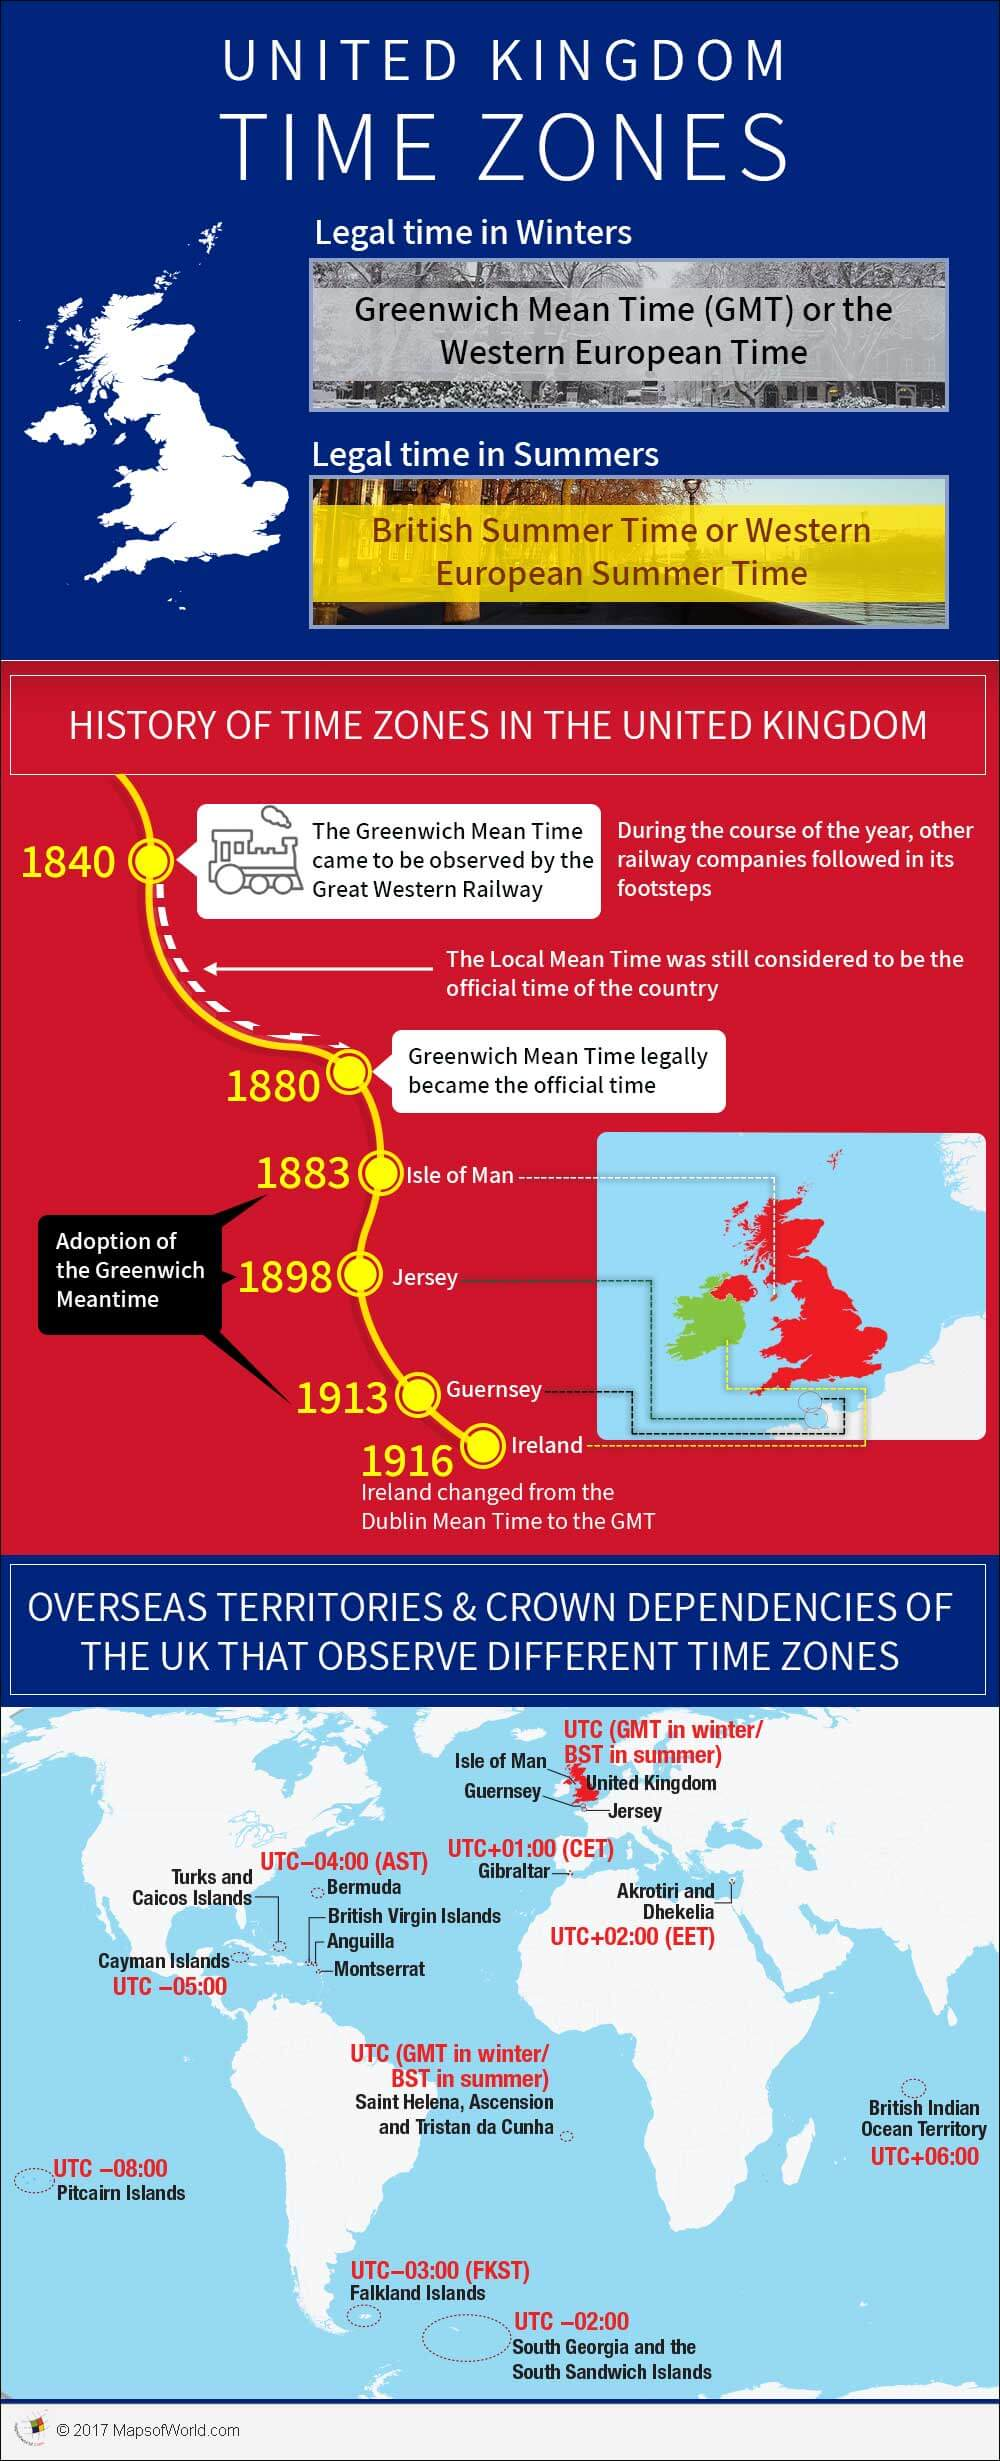 An Infographic on Time Zones of the United Kingdom - Answers